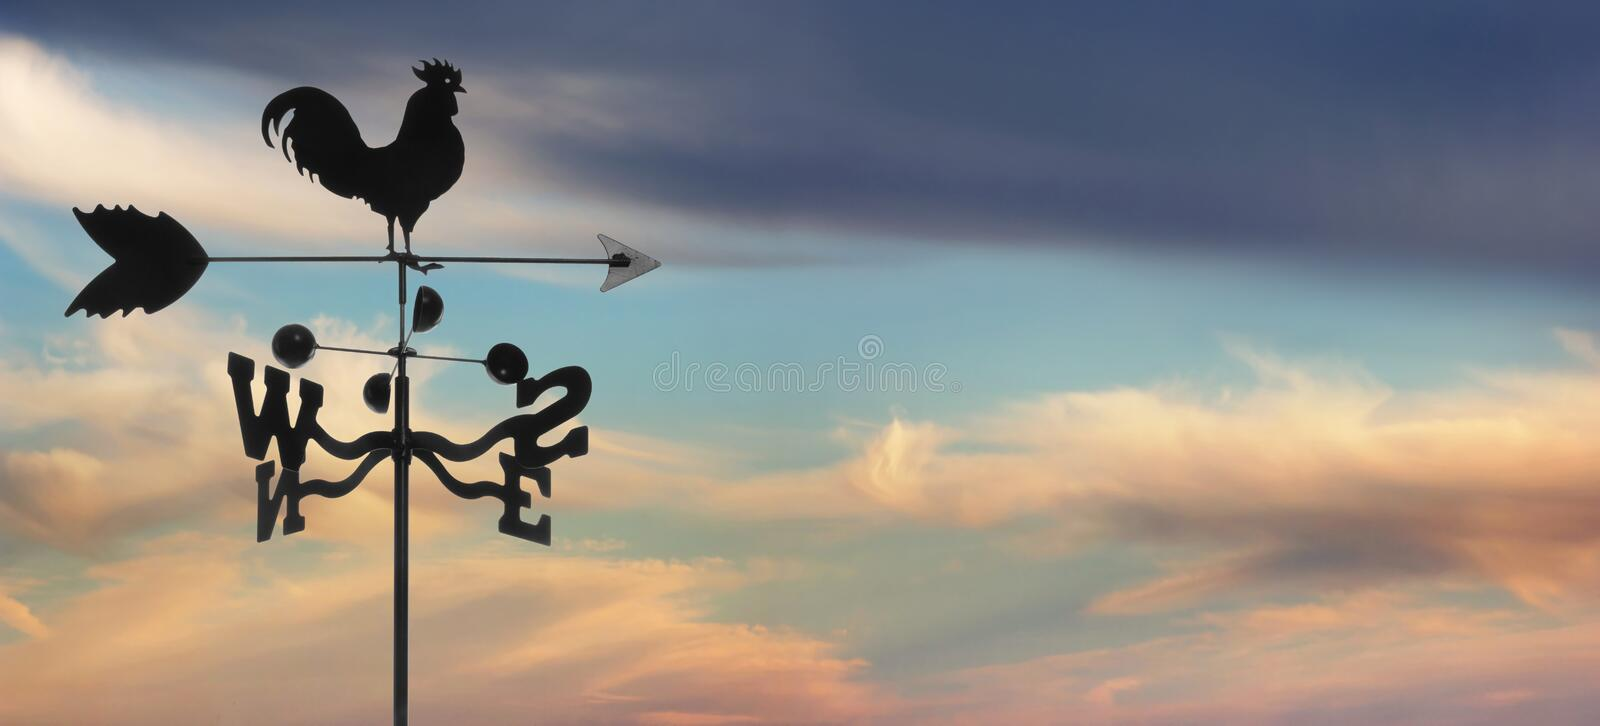 Weathervane against cloudscape royalty free stock photos